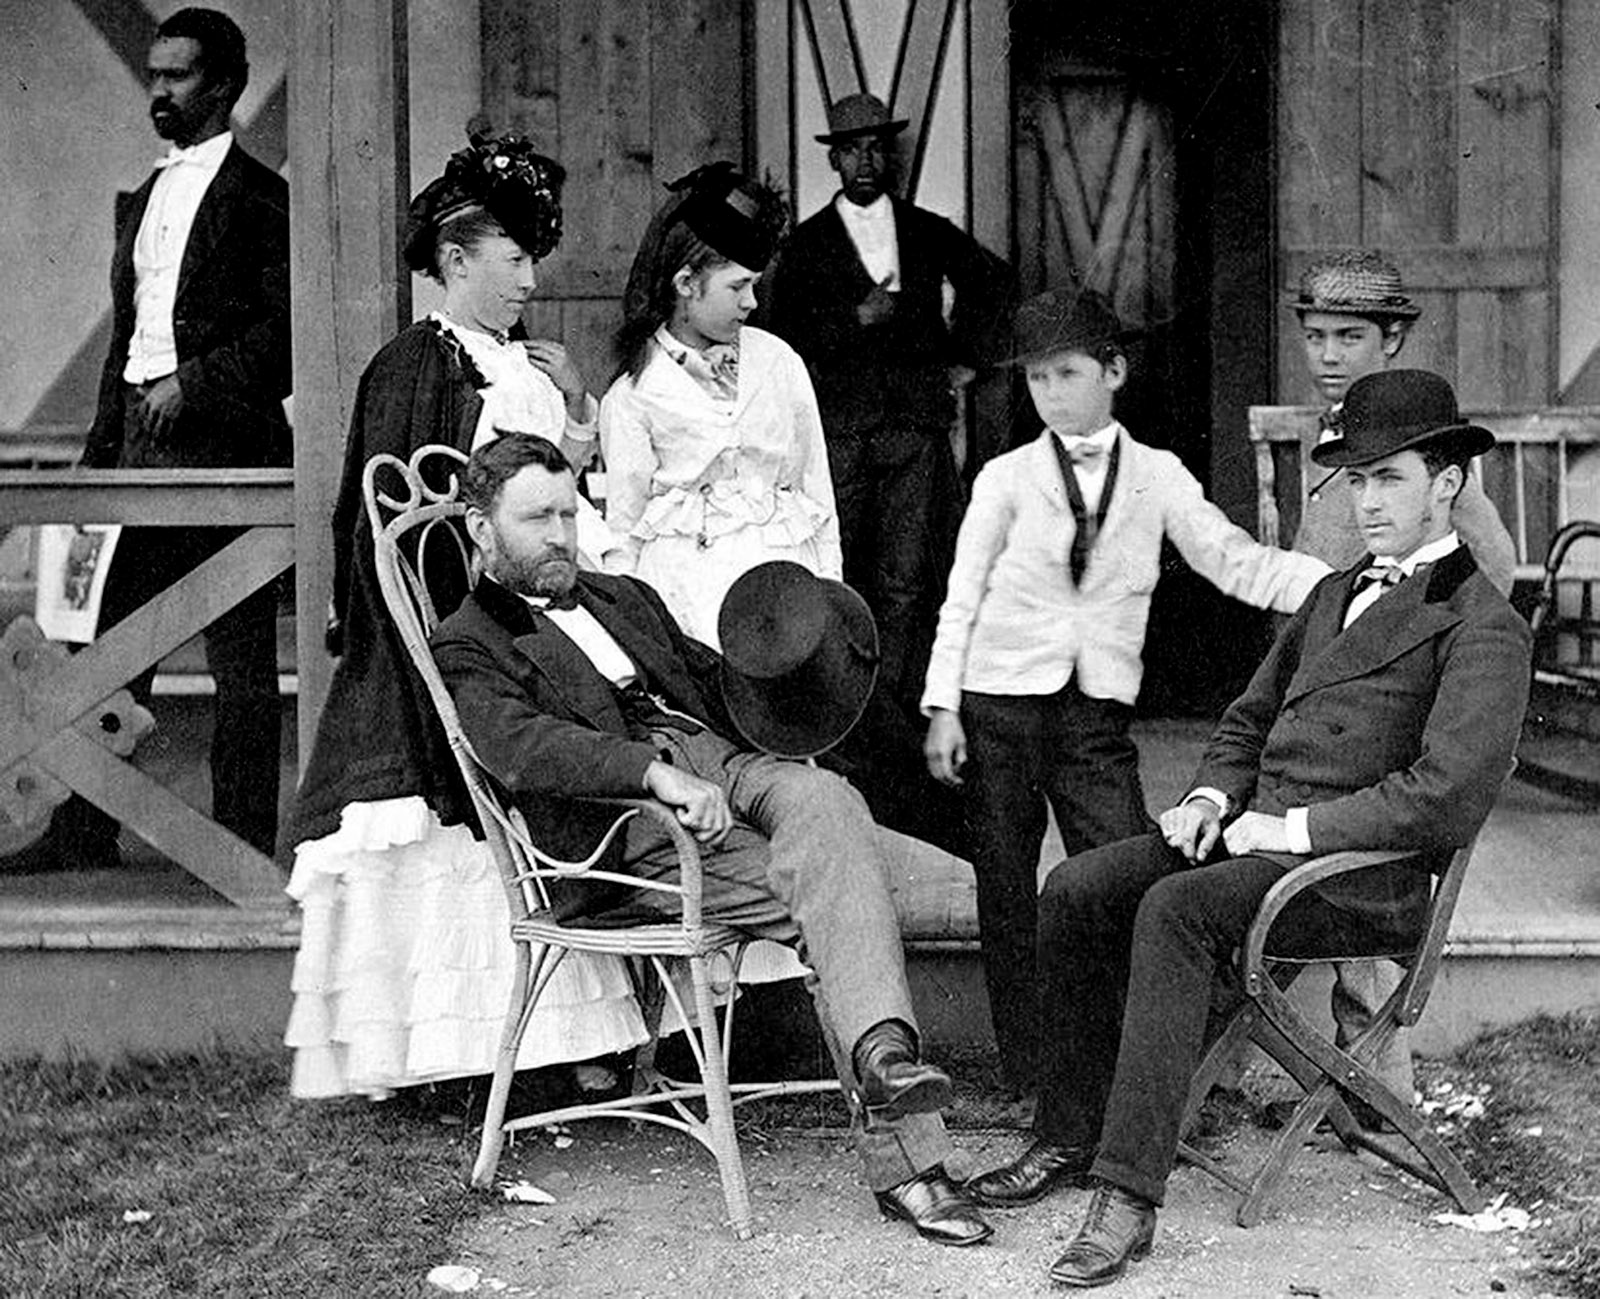 Ulysses S. Grant and his family, Long Branch, New Jersey, 1870